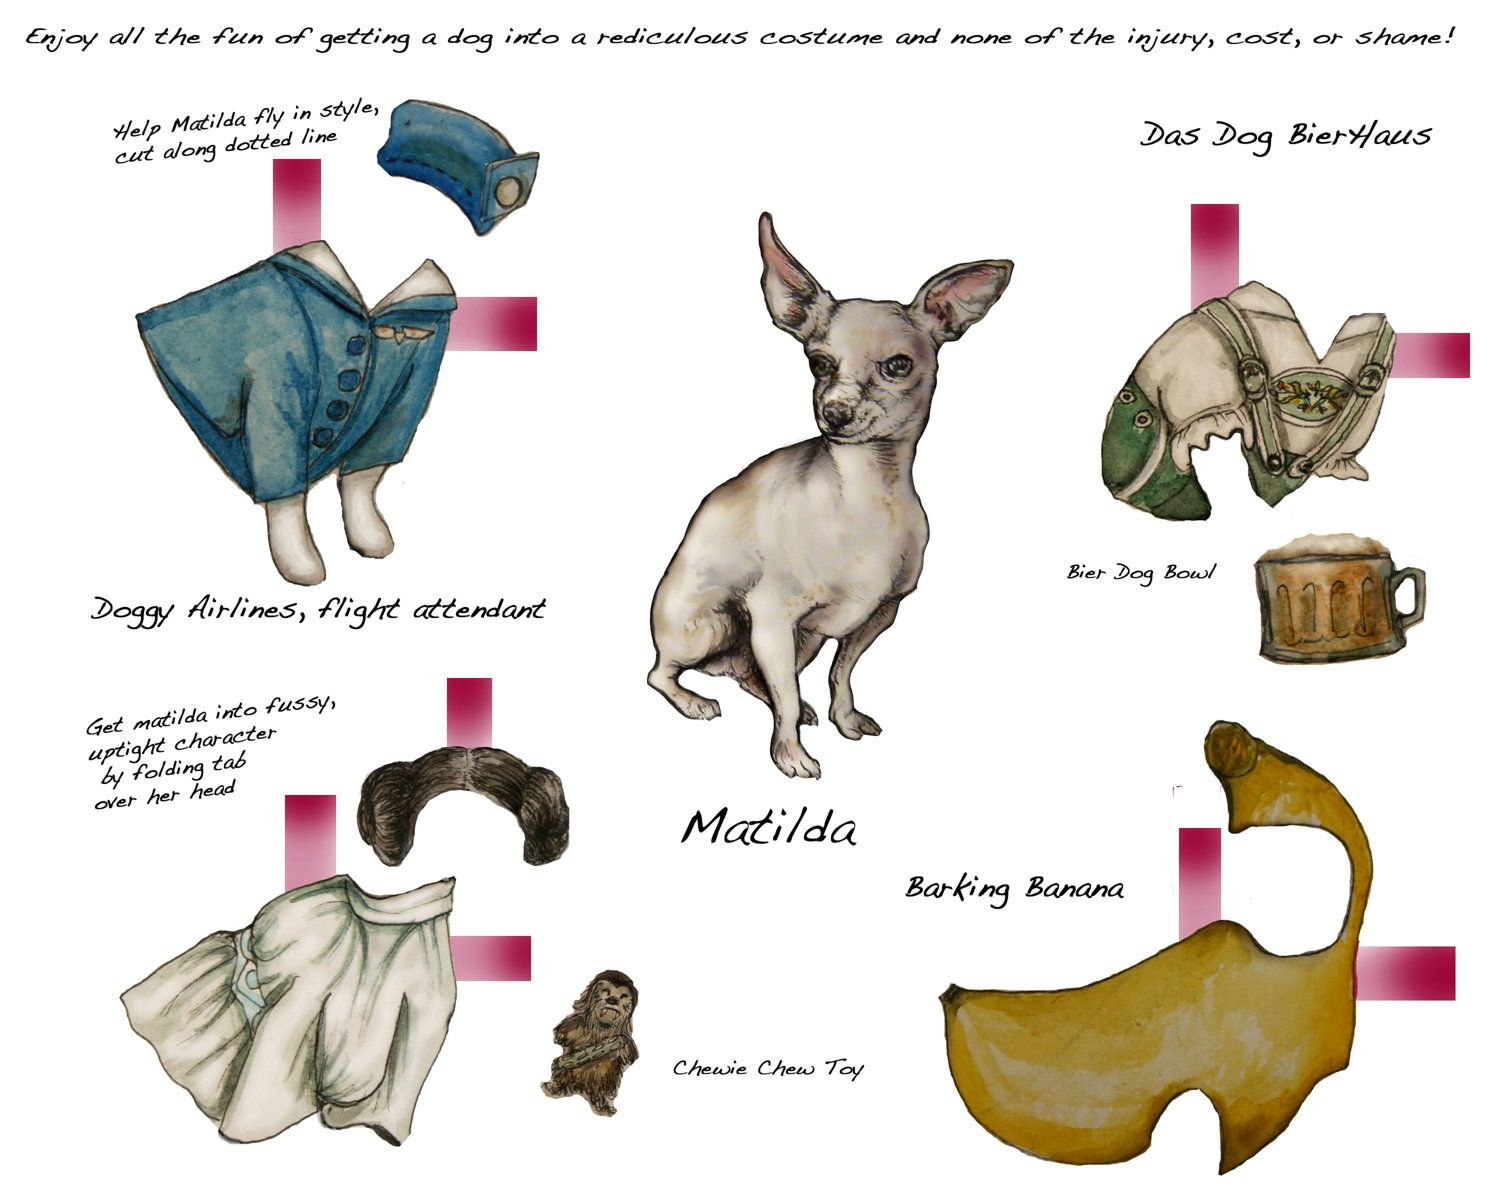 Paper Doll Doggy Styles Paper Dolls Vintage Paper Dolls Paper